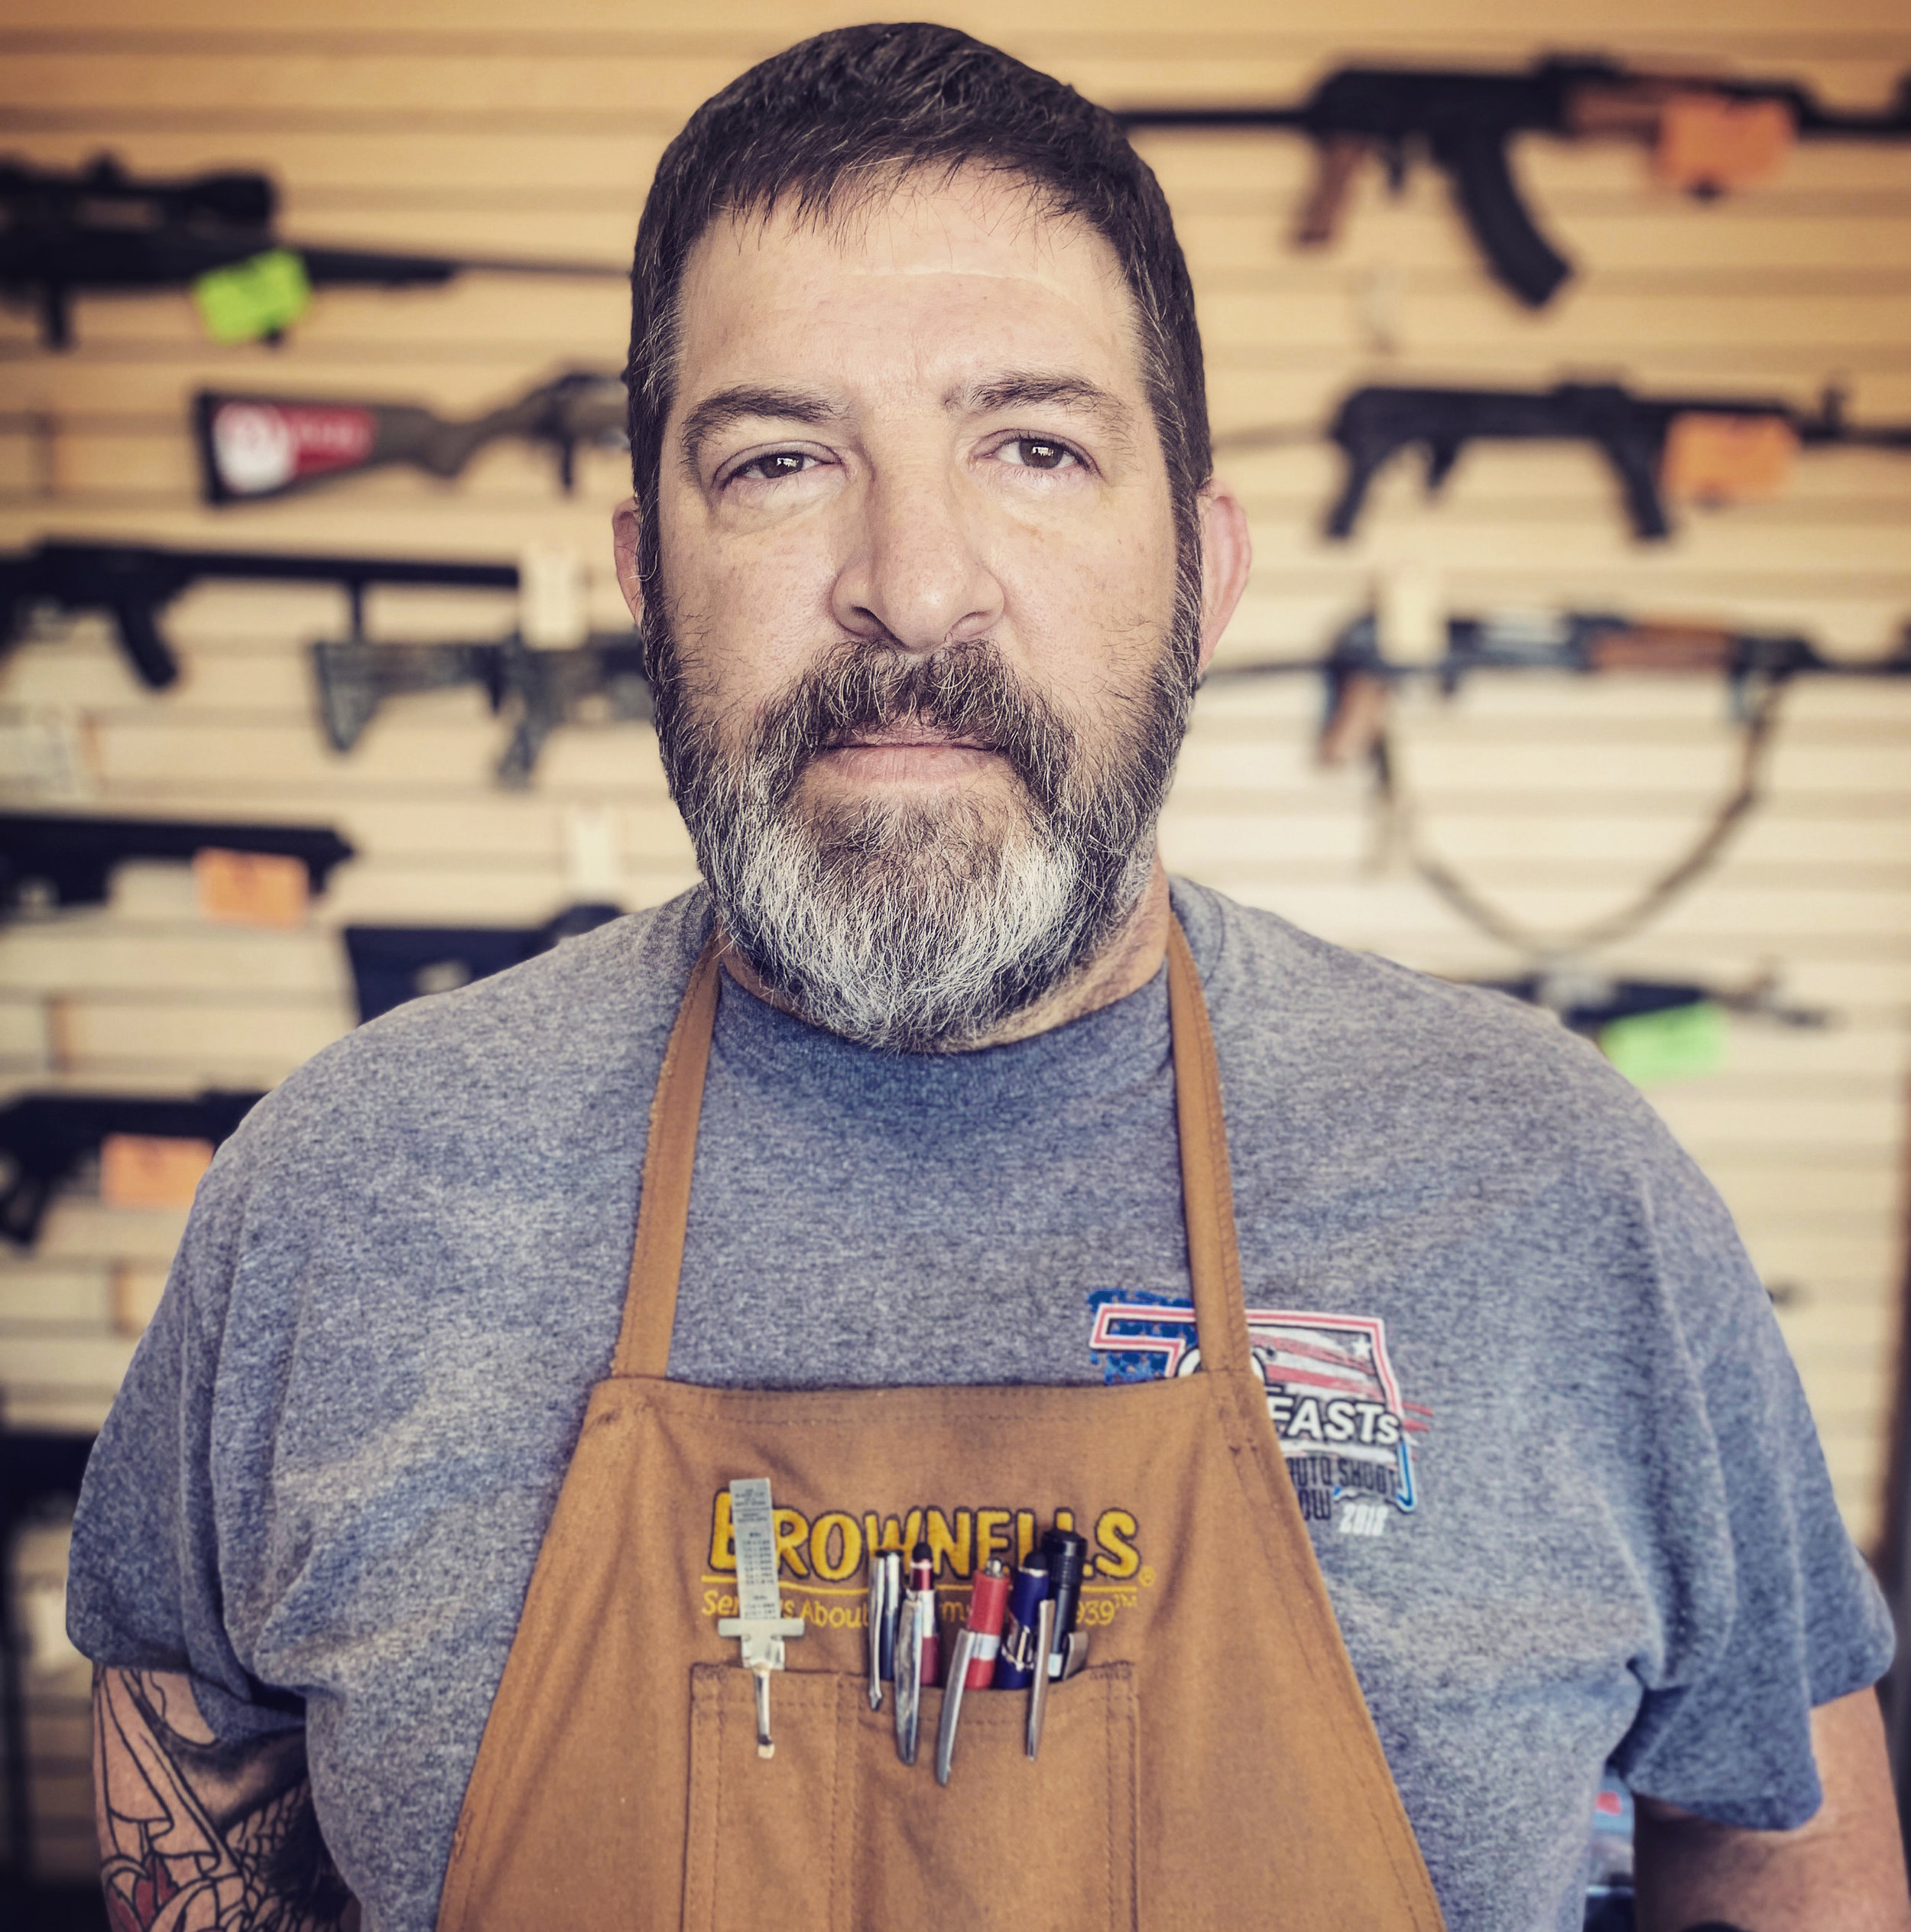 thomas w gowen - I was always interested in guns as a kid. I grew up hunting pheasants and rabbits in Nebraska so guns were a normal part of life. I was a mechanic in the automotive industry for over 30 years. In 2006, my house burned down and I had an AK left in my safe and through a gun dealer buddy met Charlie Jacques. He bought what was left of it for $35 and rebuilt it. That got my interested in building and I started building as a hobby. I knew it was time to make the passion a full time gig and decided to get out of the automotive industry and get my FFL license and start manufacturing full time.